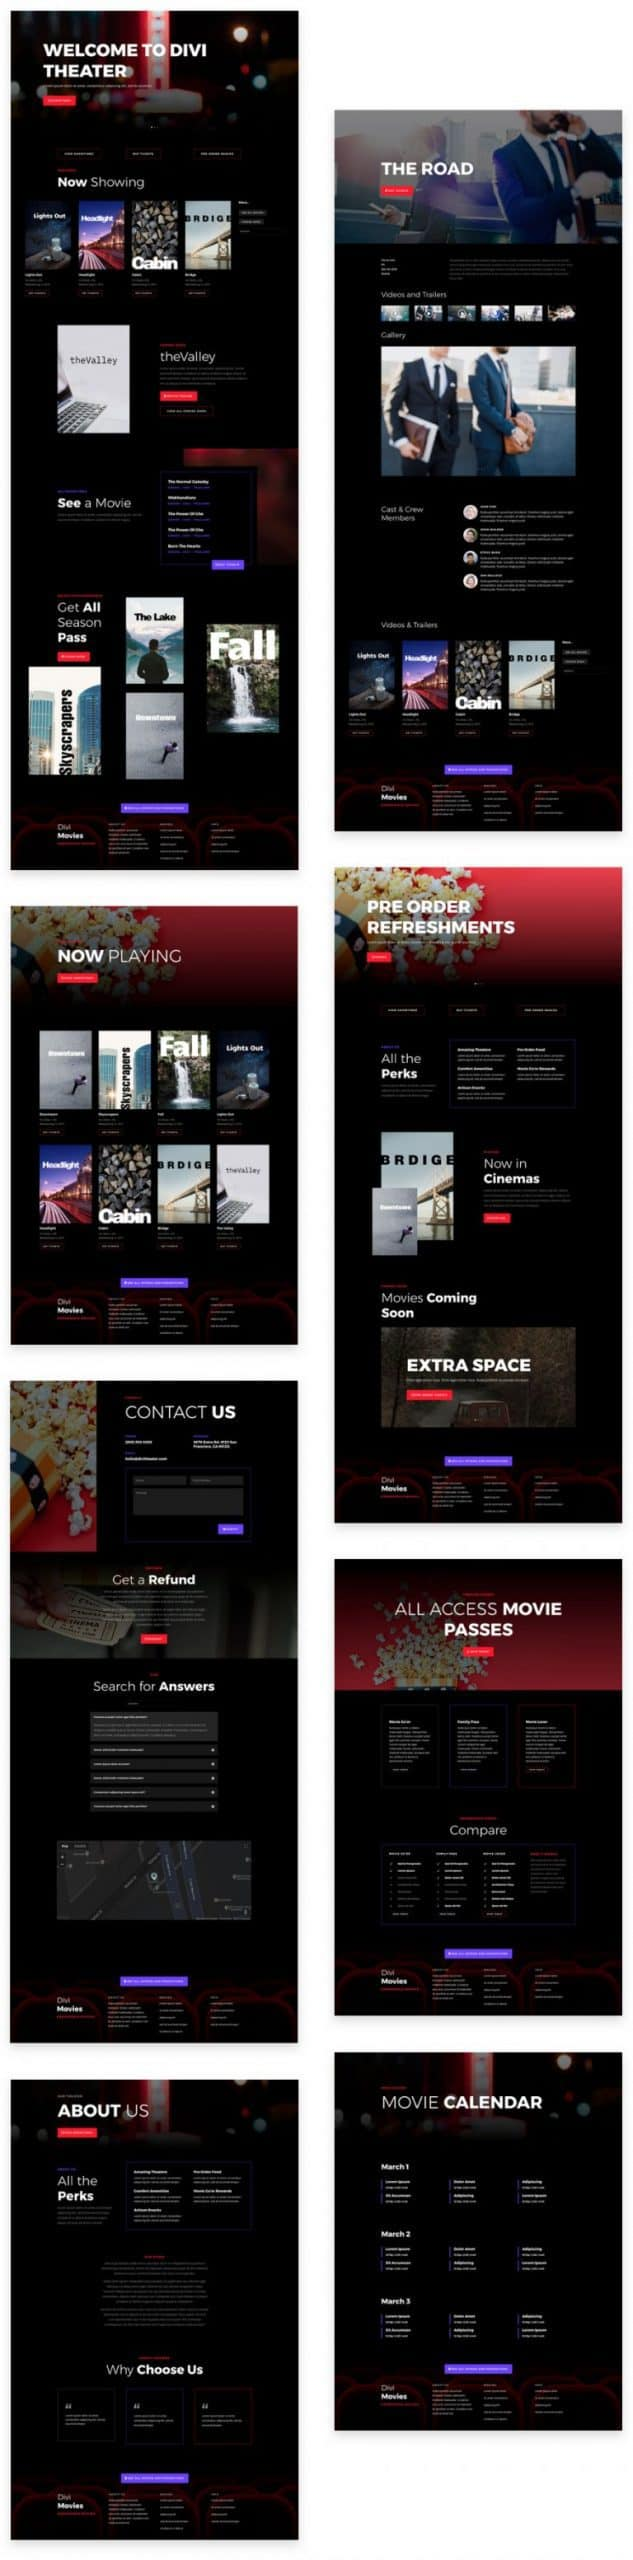 Movie Theatre Divi Layout Pack